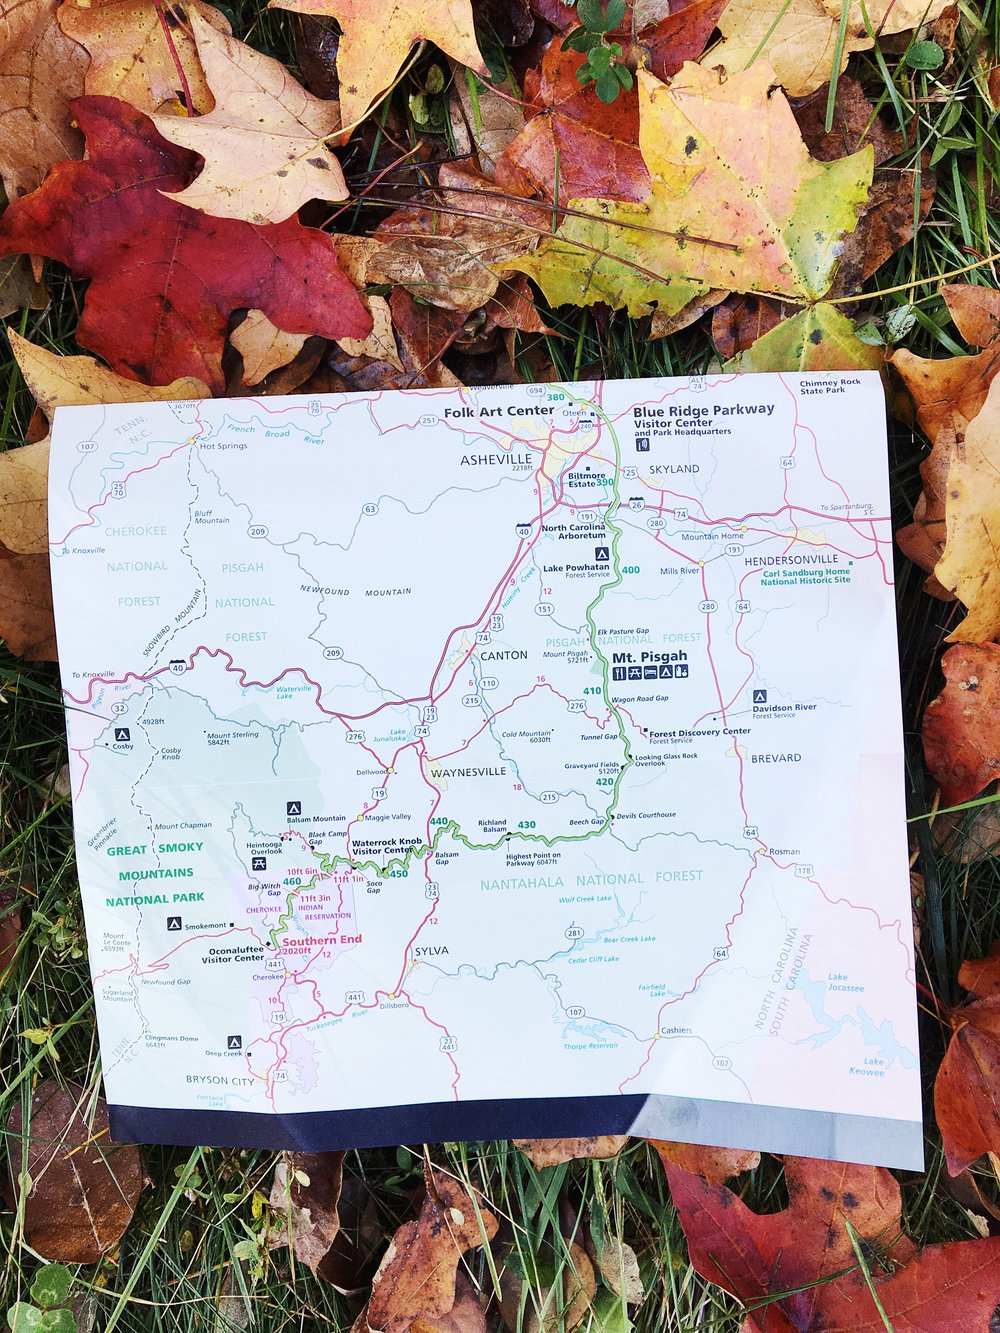 Map of the Blue Ridge Parkway Near Asheville, NC